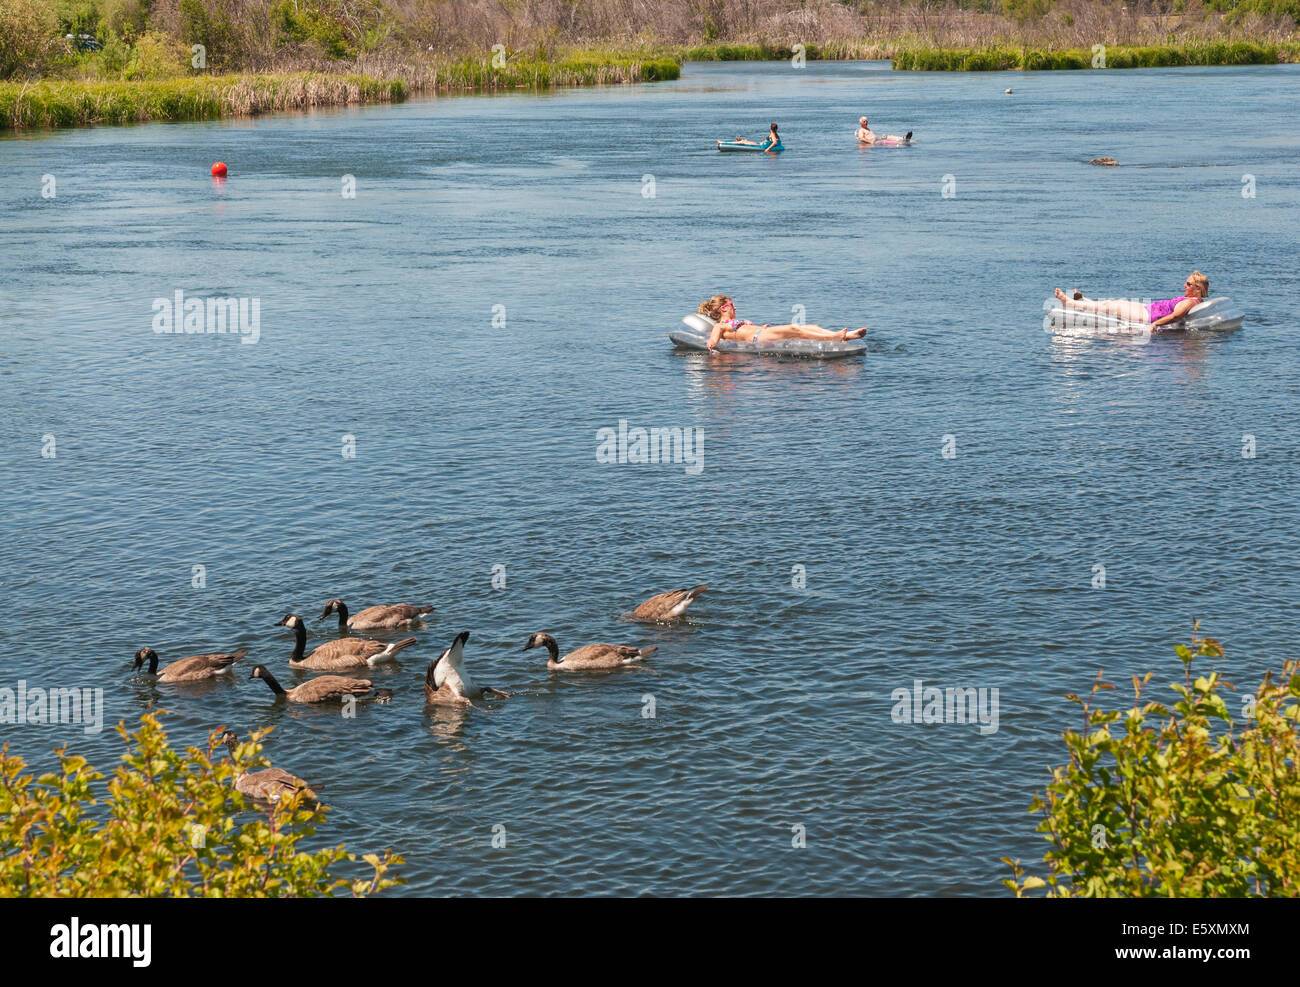 Oregon, Bend, Old Mill District, Deschutes River, geese, people floating on rafts - Stock Image